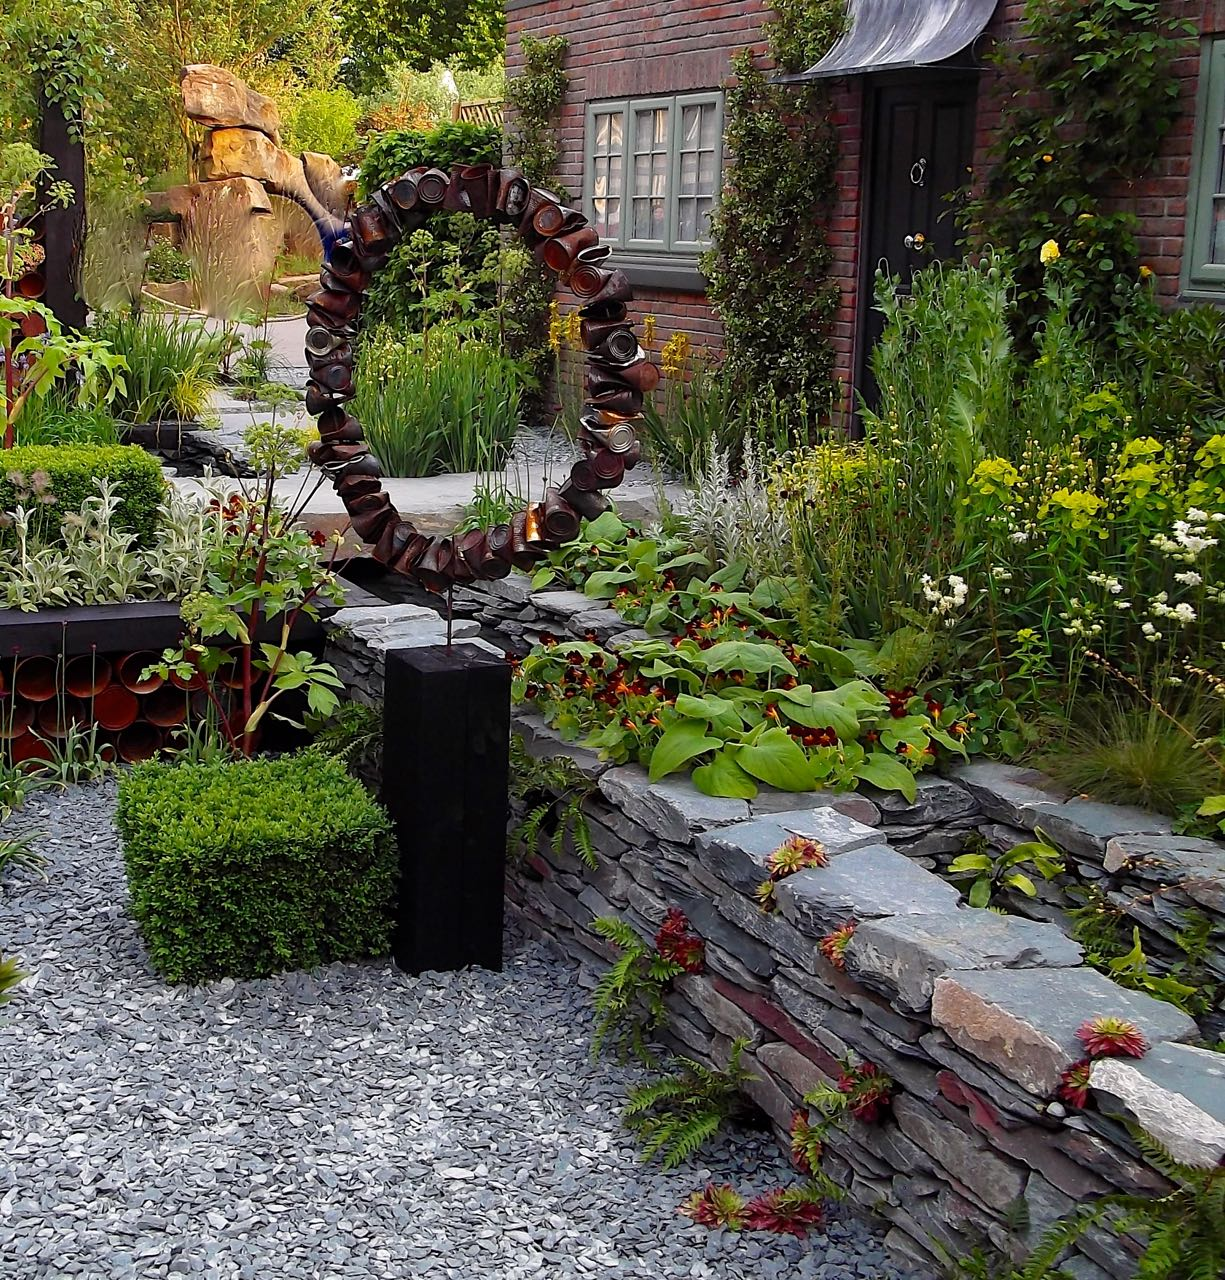 A look at the garden sculpture used in The Great Chelsea Garden Challenge 2015 - a front garden by Sean Murray